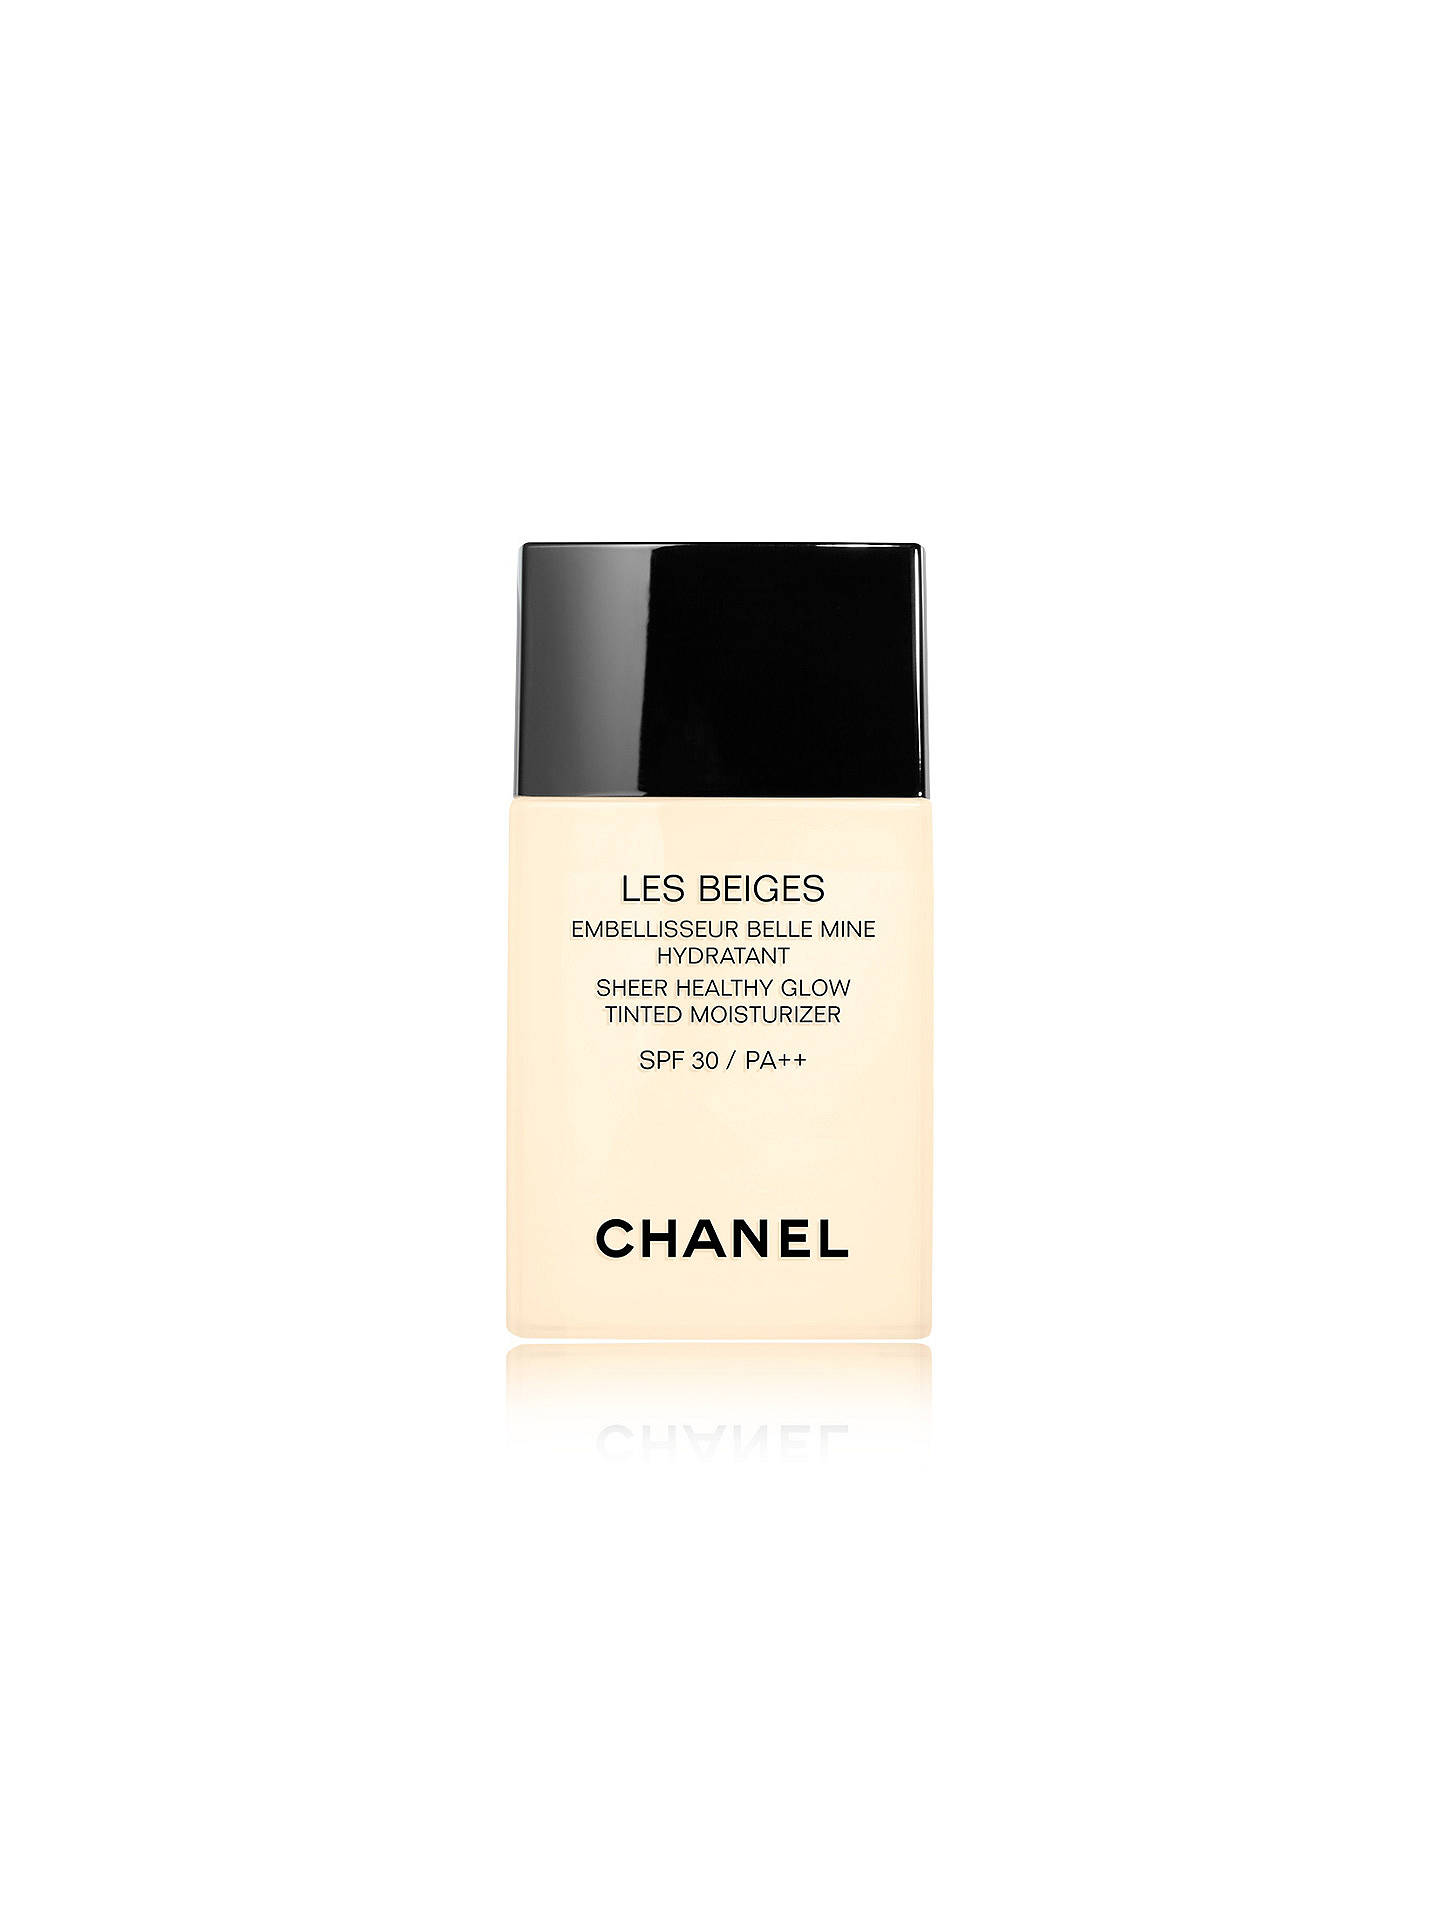 BuyCHANEL LES BEIGES Sheer Healthy Glow Tinted Moisturiser SPF 30 / PA++, Light Online at johnlewis.com